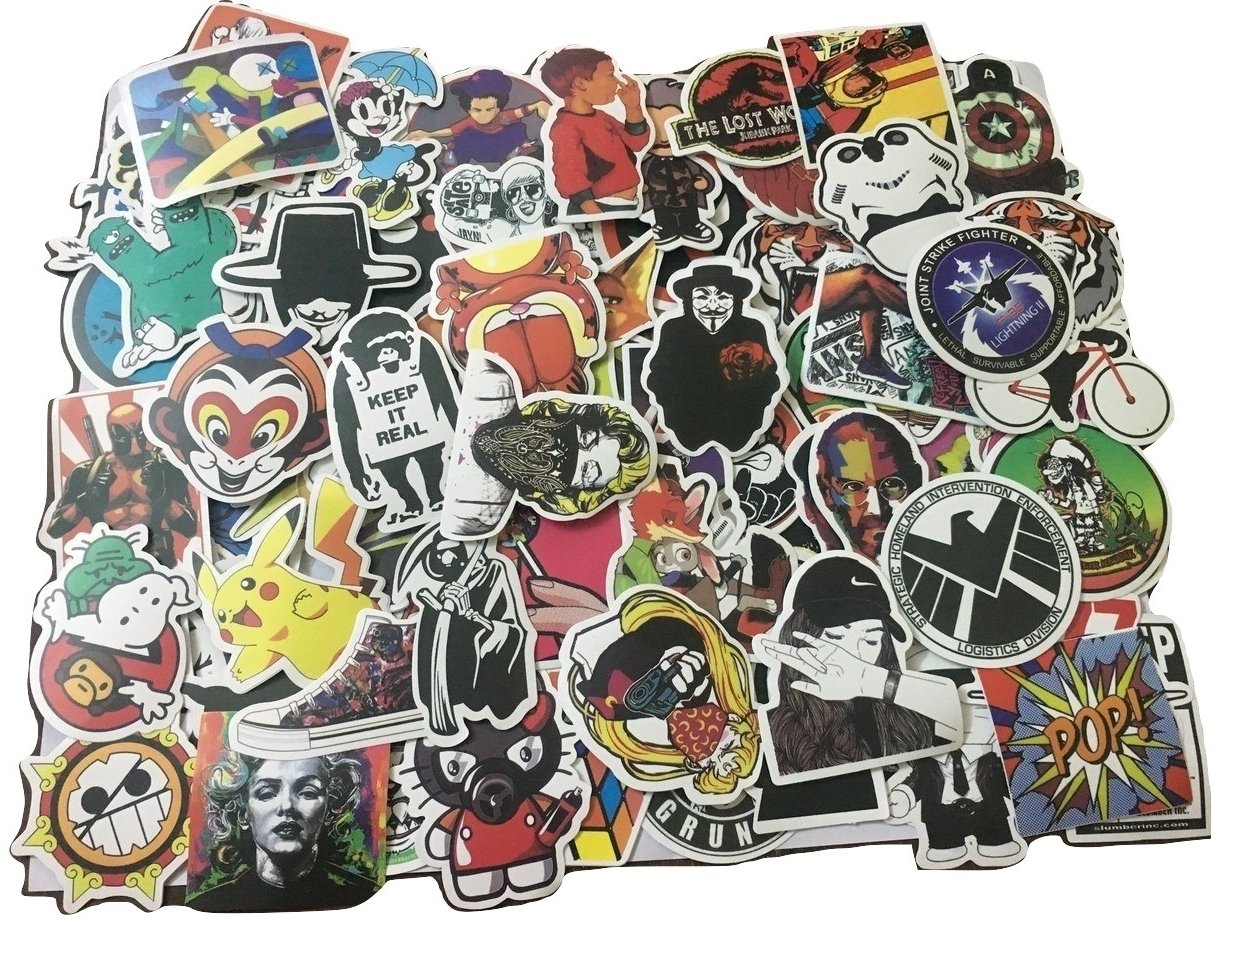 Buy chronex 100pcs cool vinyls graffiti stickers to personalize laptops skateboards luggage cars bumpers bikes online at low prices in india amazon